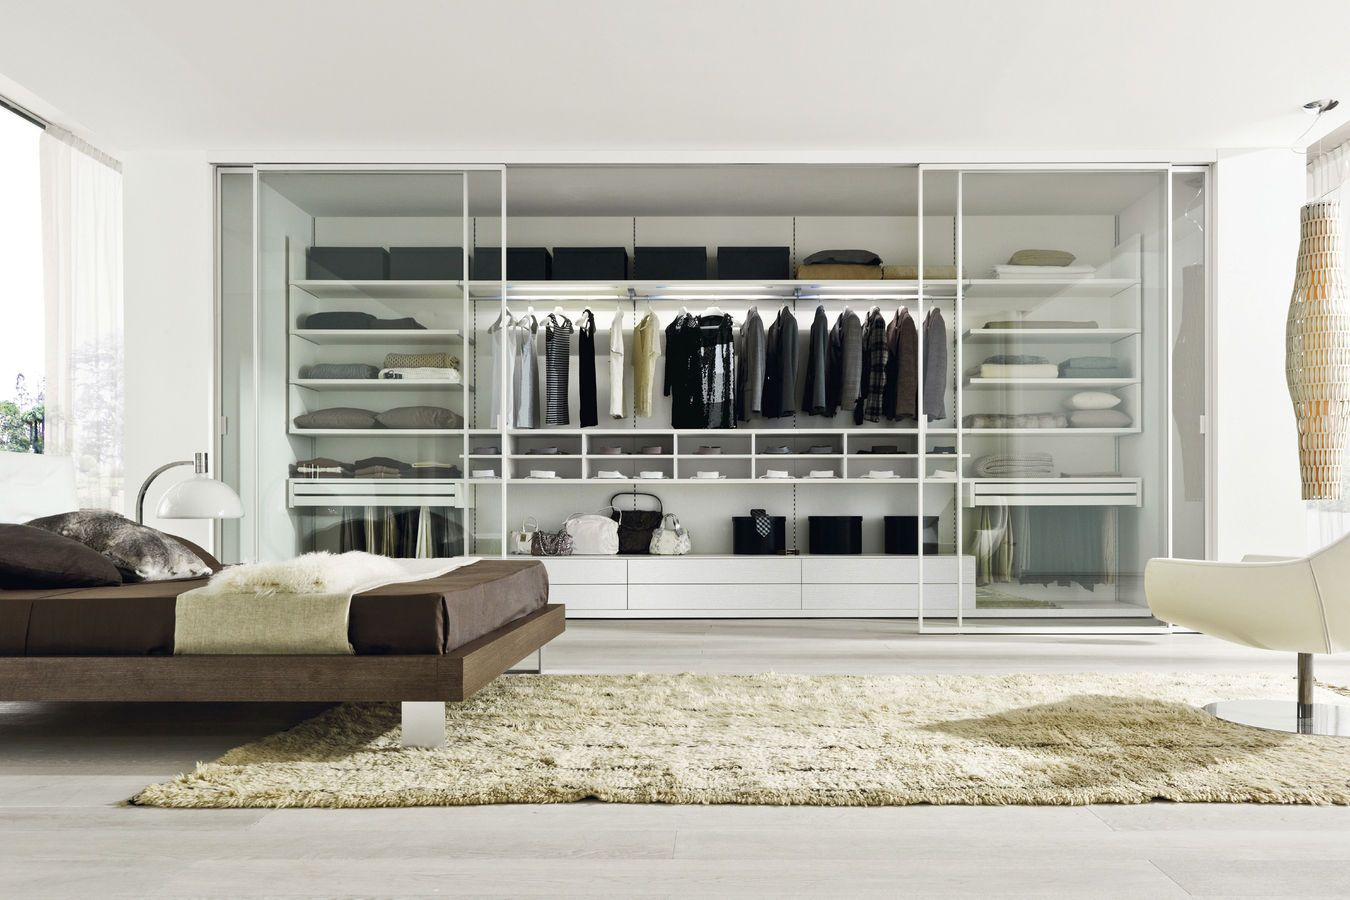 Amazing walk in closets of walk in wardrobe designs cool amazing walk in closets of walk in wardrobe designs cool tempered glass walk in planetlyrics Image collections